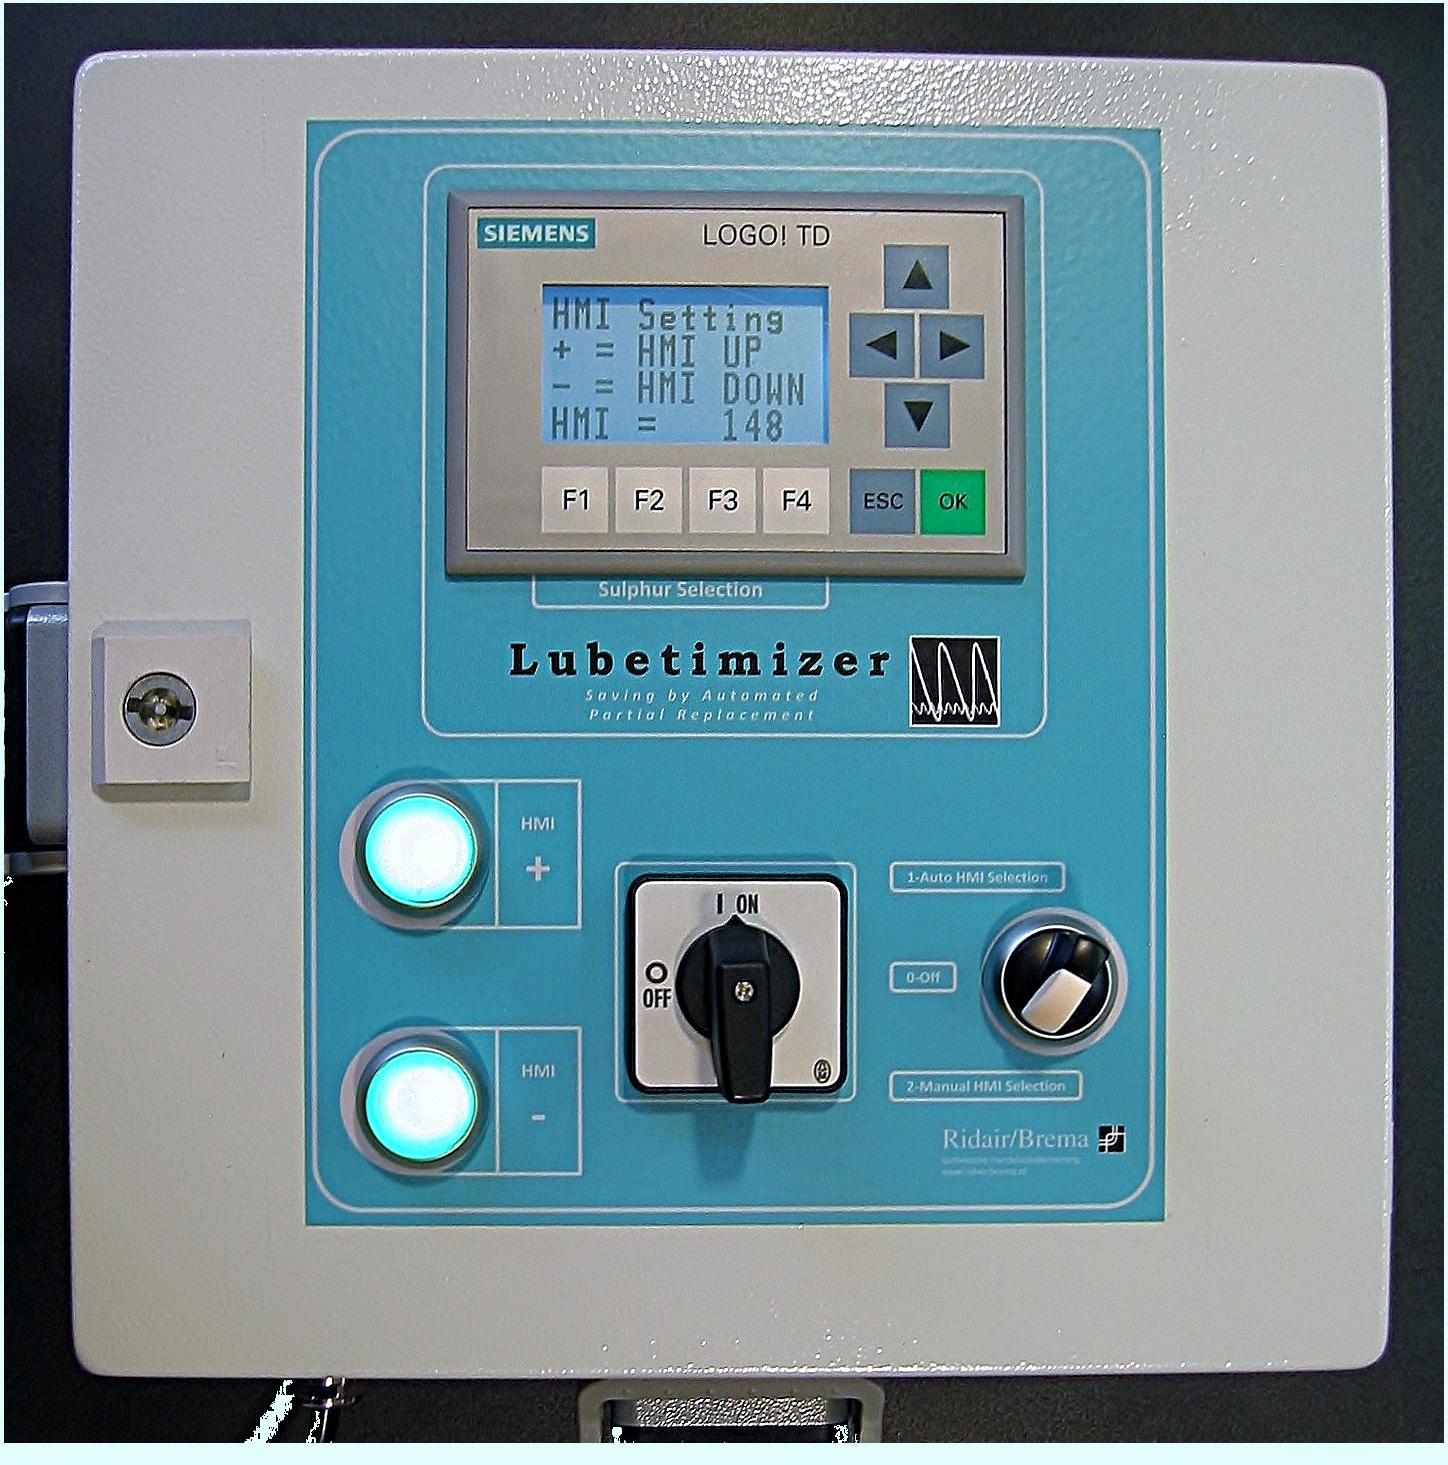 Lubetimizer control unit